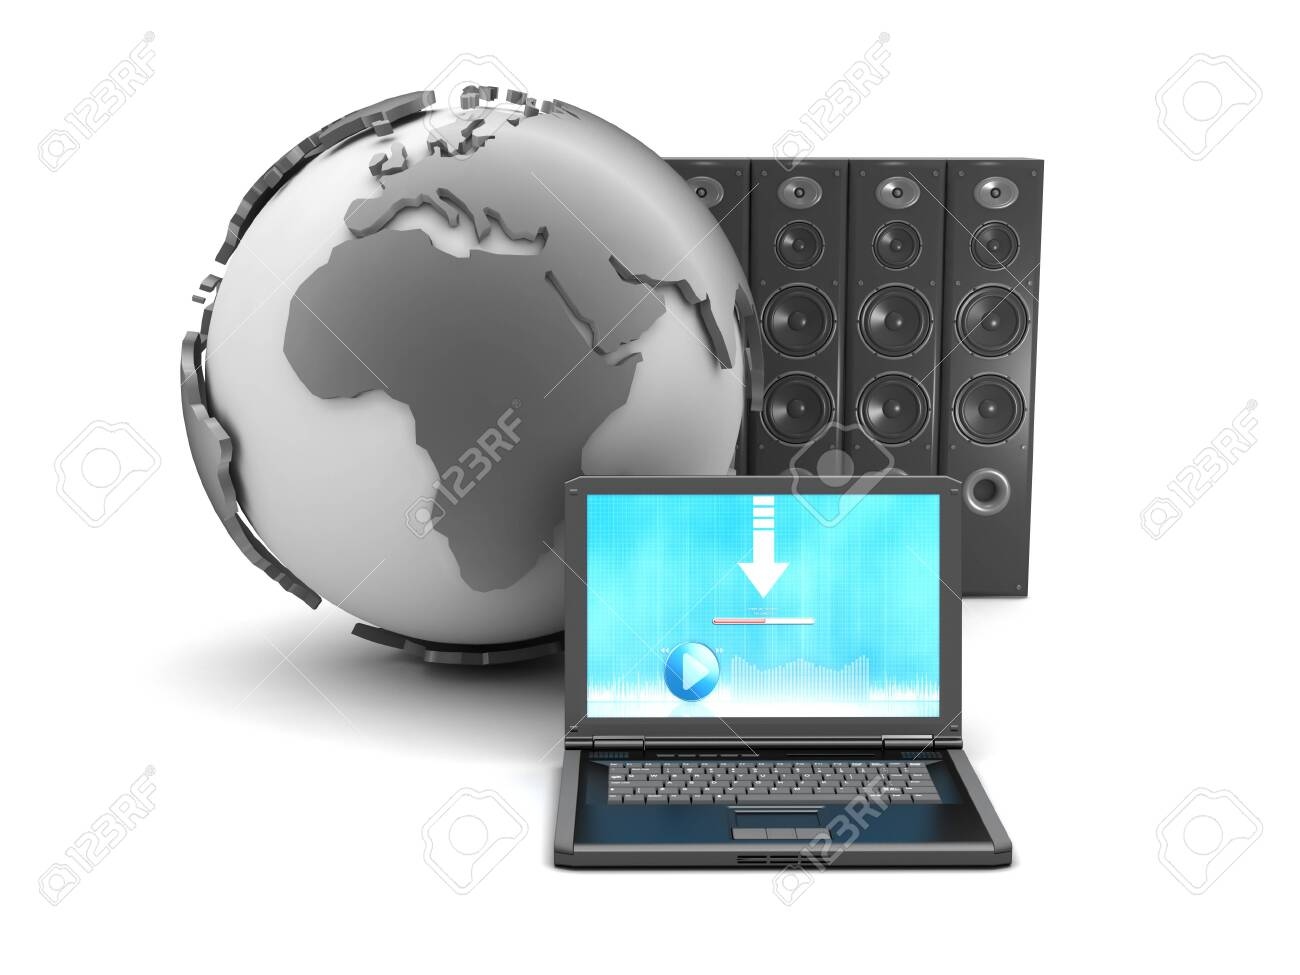 Earth globe, laptop and large sound system on white background Stock Photo - 26092878